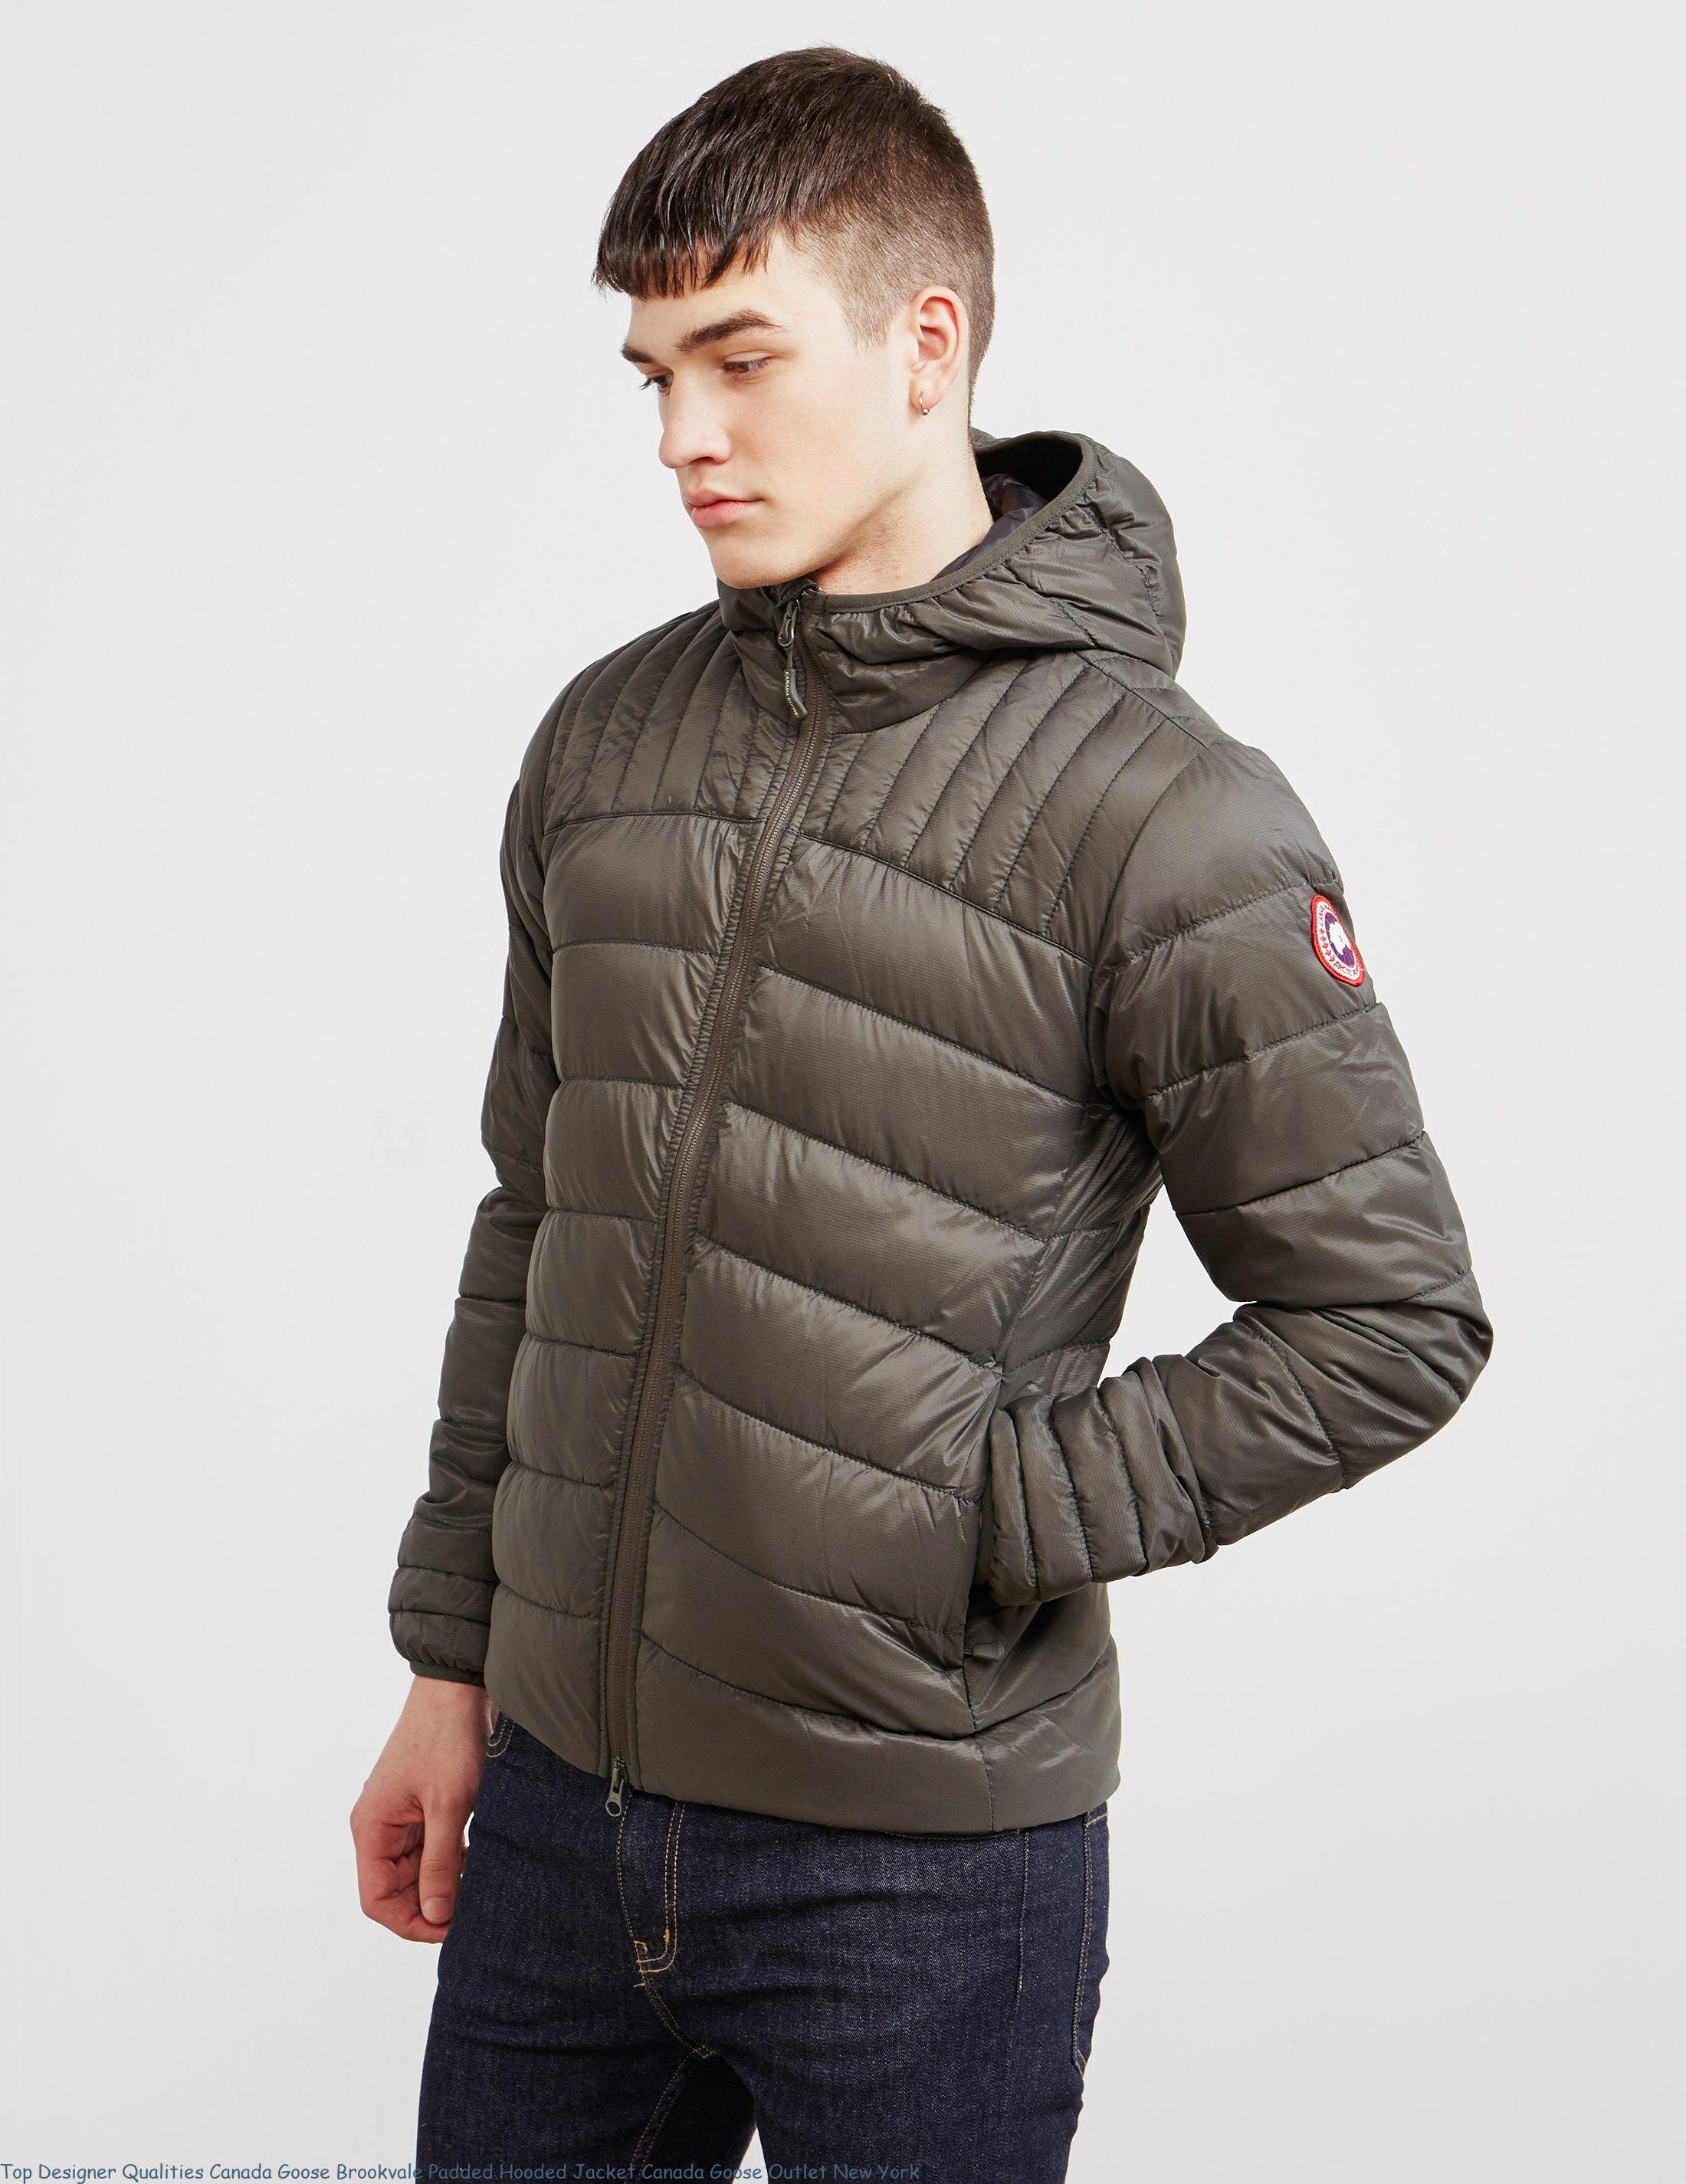 Top Designer Qualities Canada Goose Brookvale Padded Hooded Jacket Canada  Goose Outlet New York – Canada Goose On Sale Outlet Steep Cheap Clearance